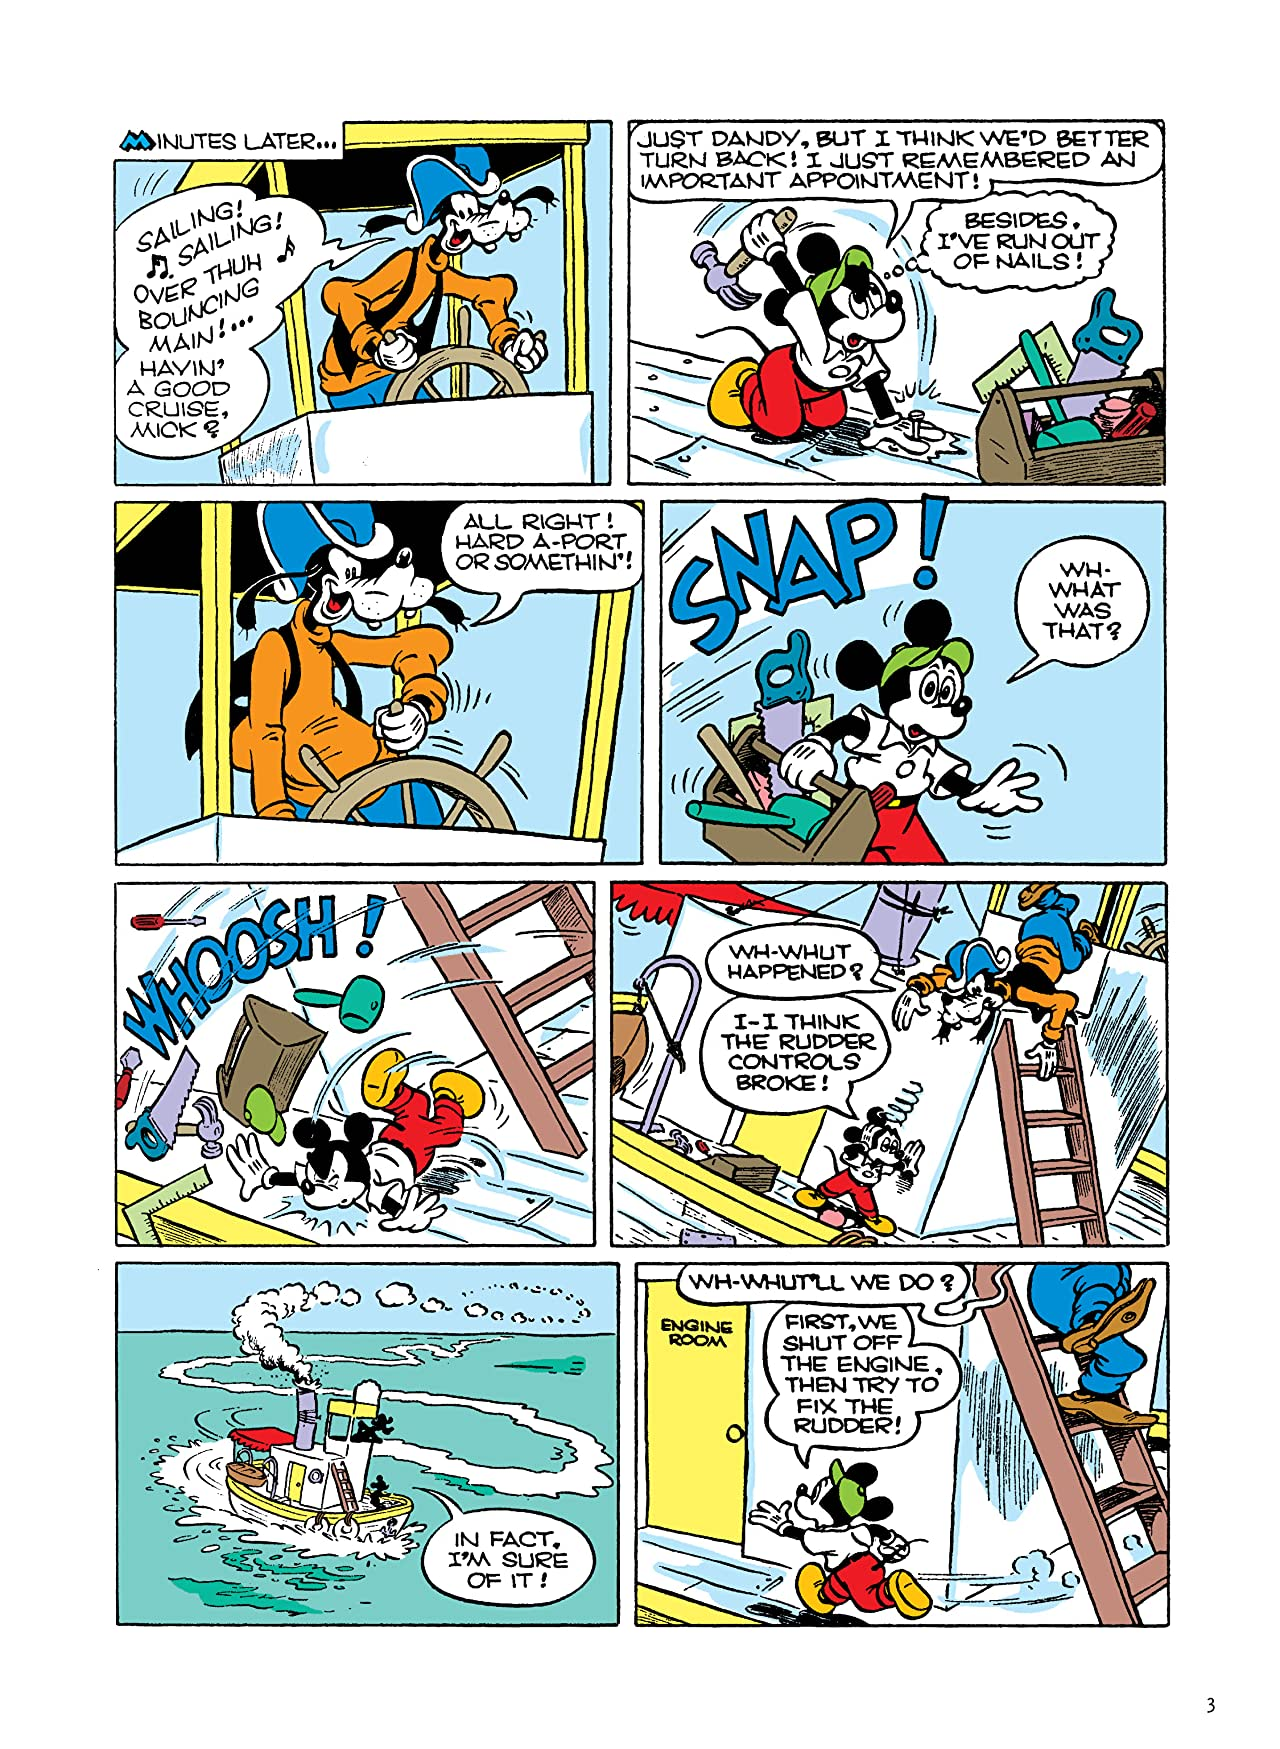 Disney Masters Vol. 13: Mickey Mouse: The Sunken City